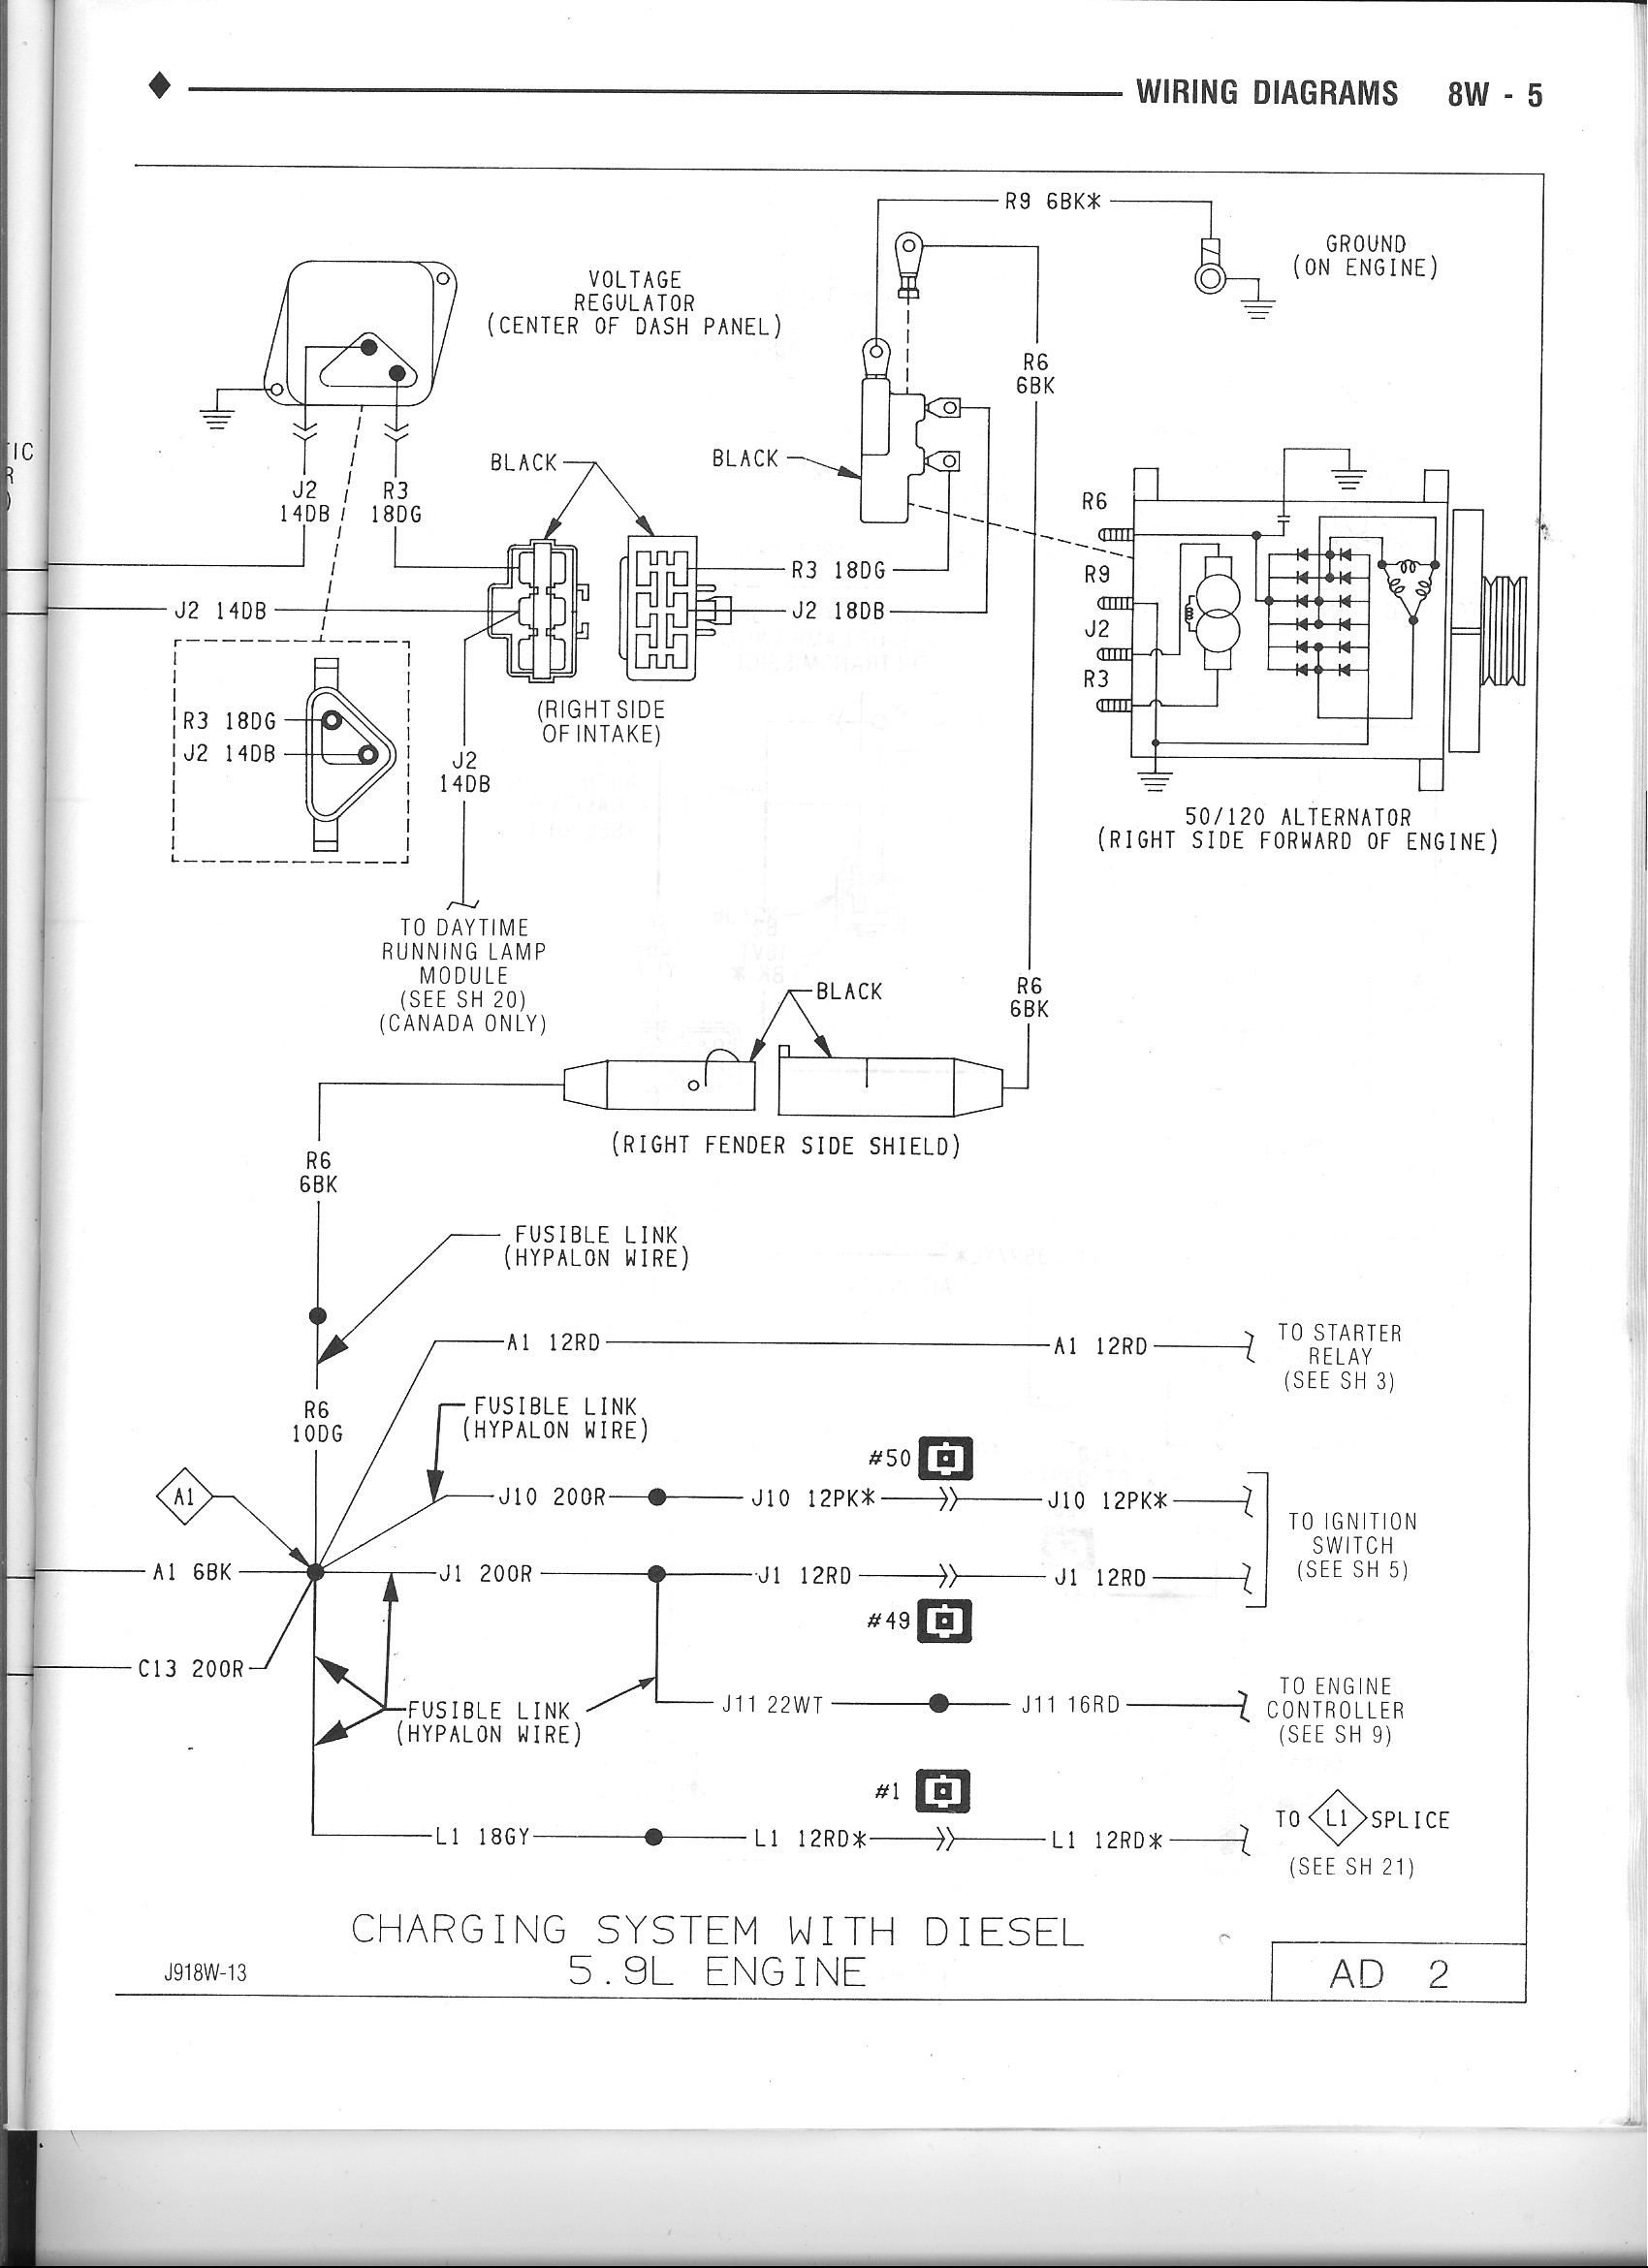 Scan05 1992 dodge d250 wiring diagram 1993 dodge d250 wiring diagram 91 dodge ram 250 diesel wiring diagram at edmiracle.co